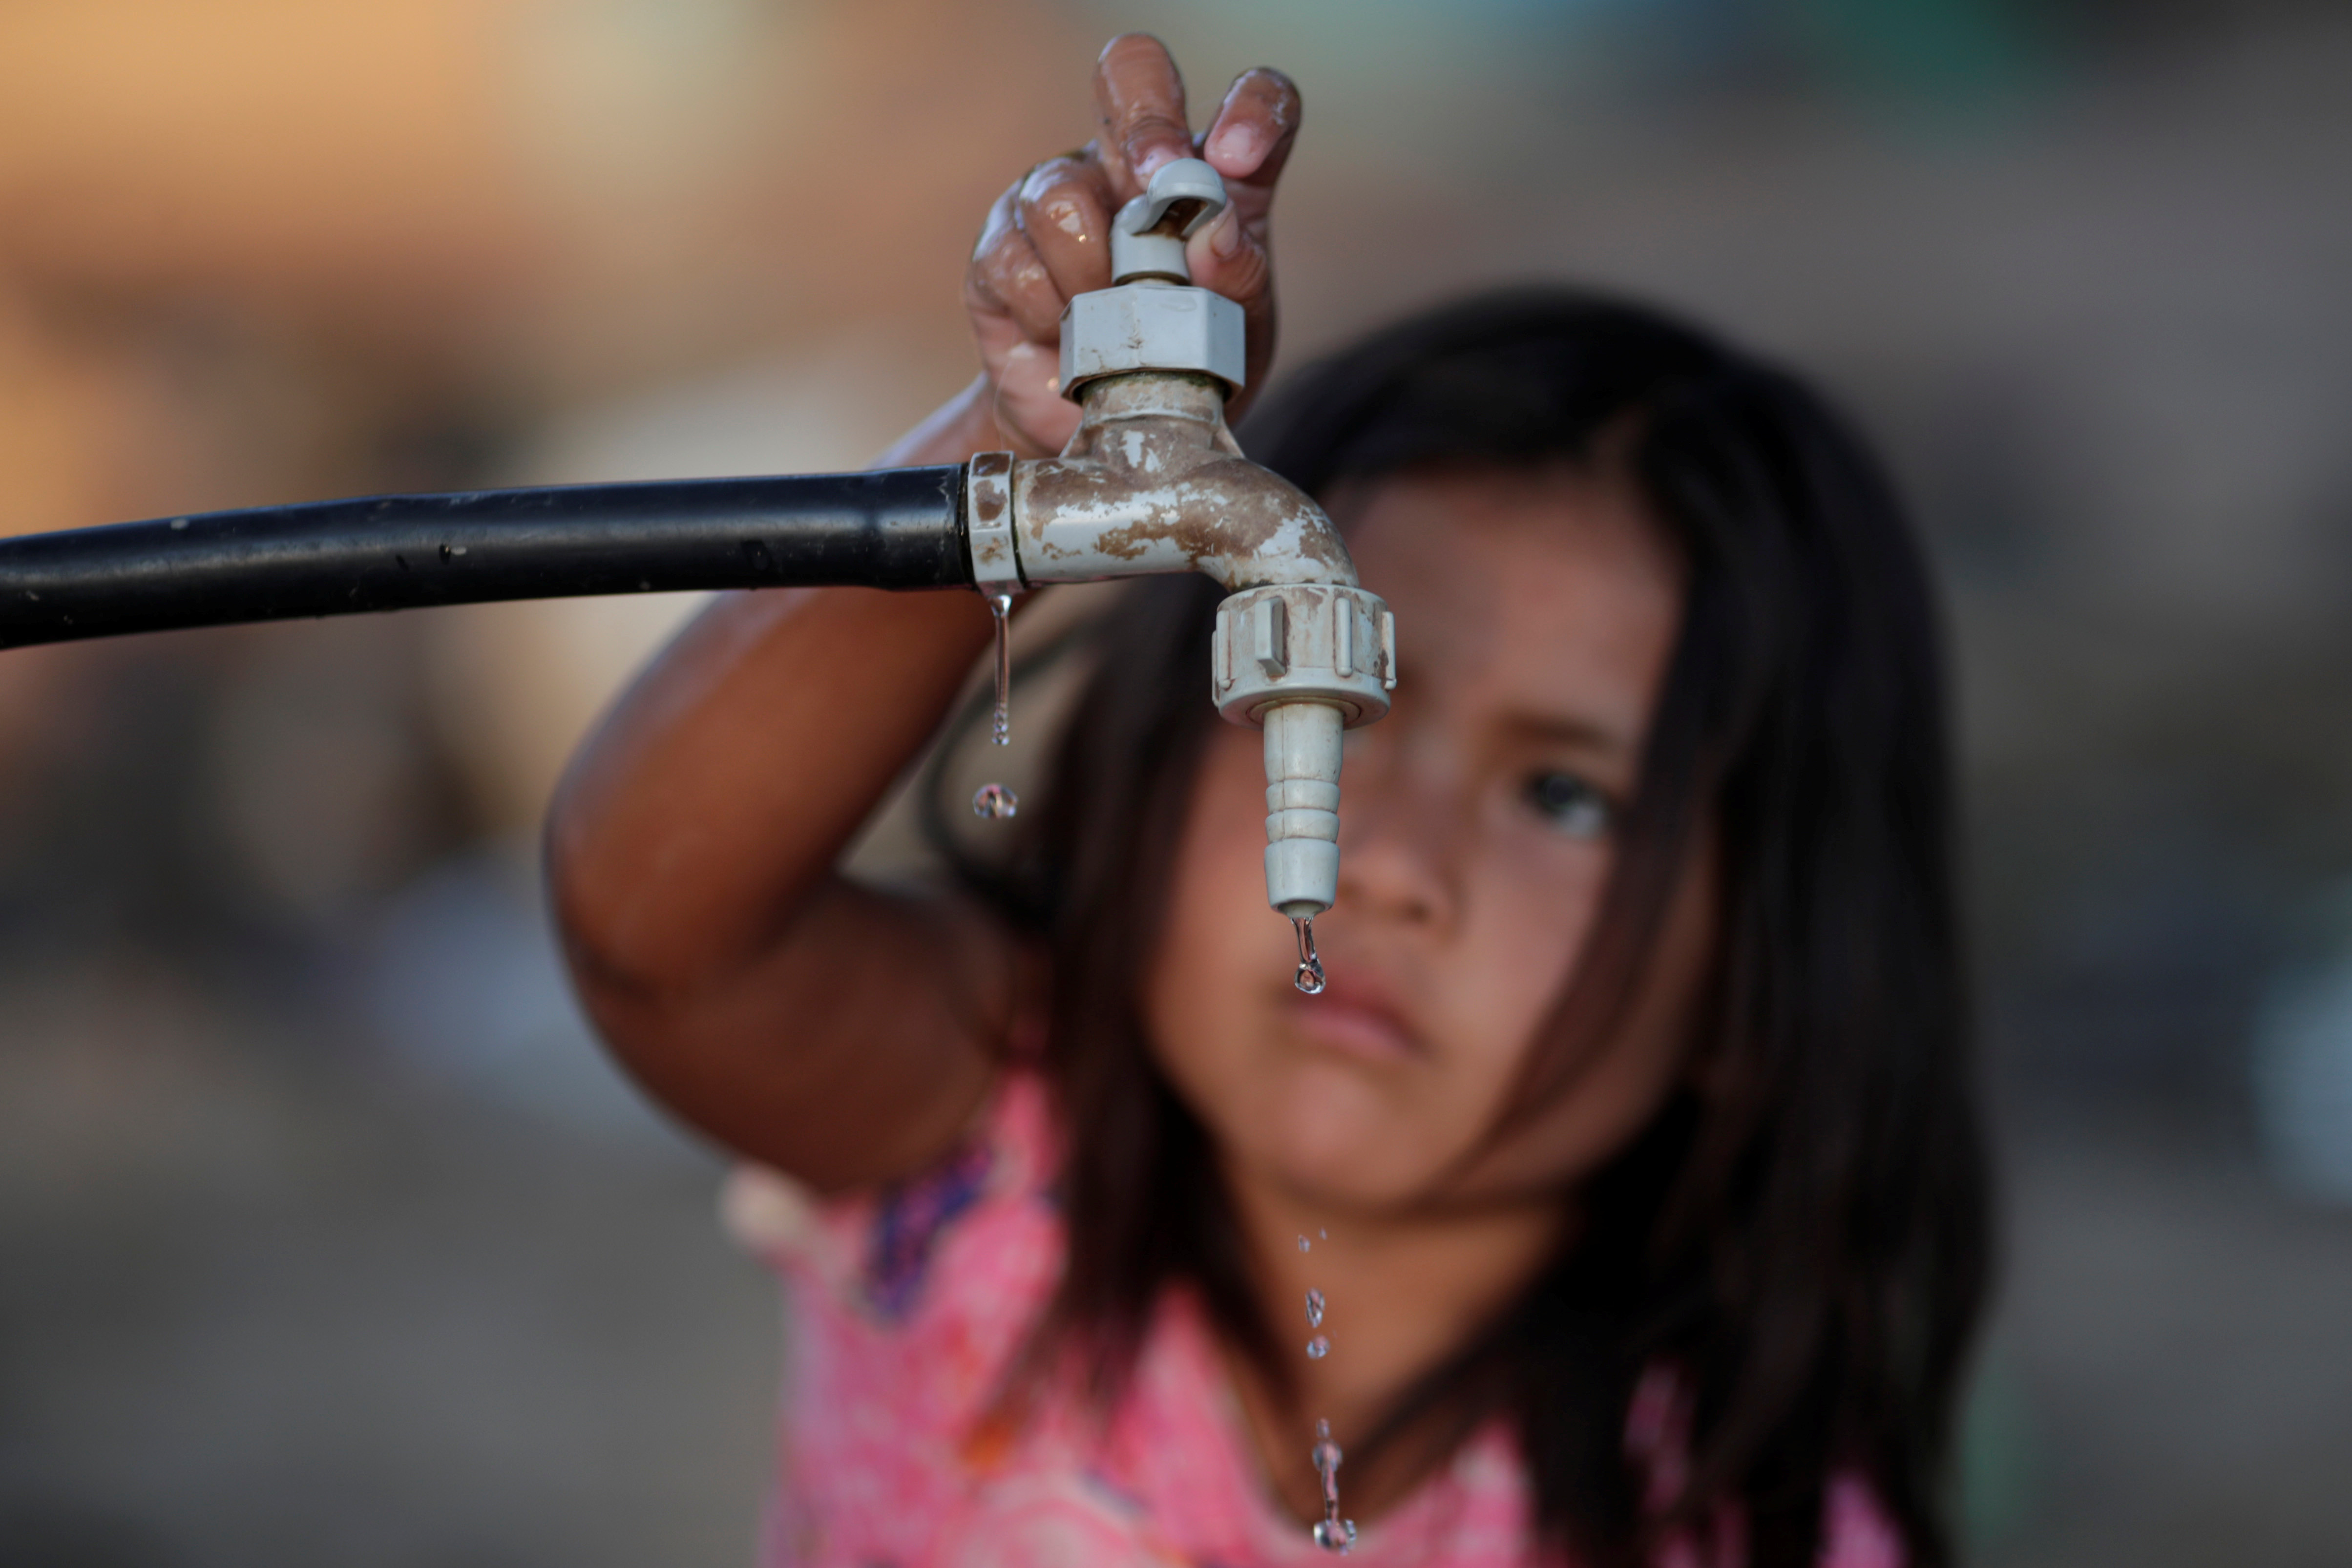 a child turns off a water tap